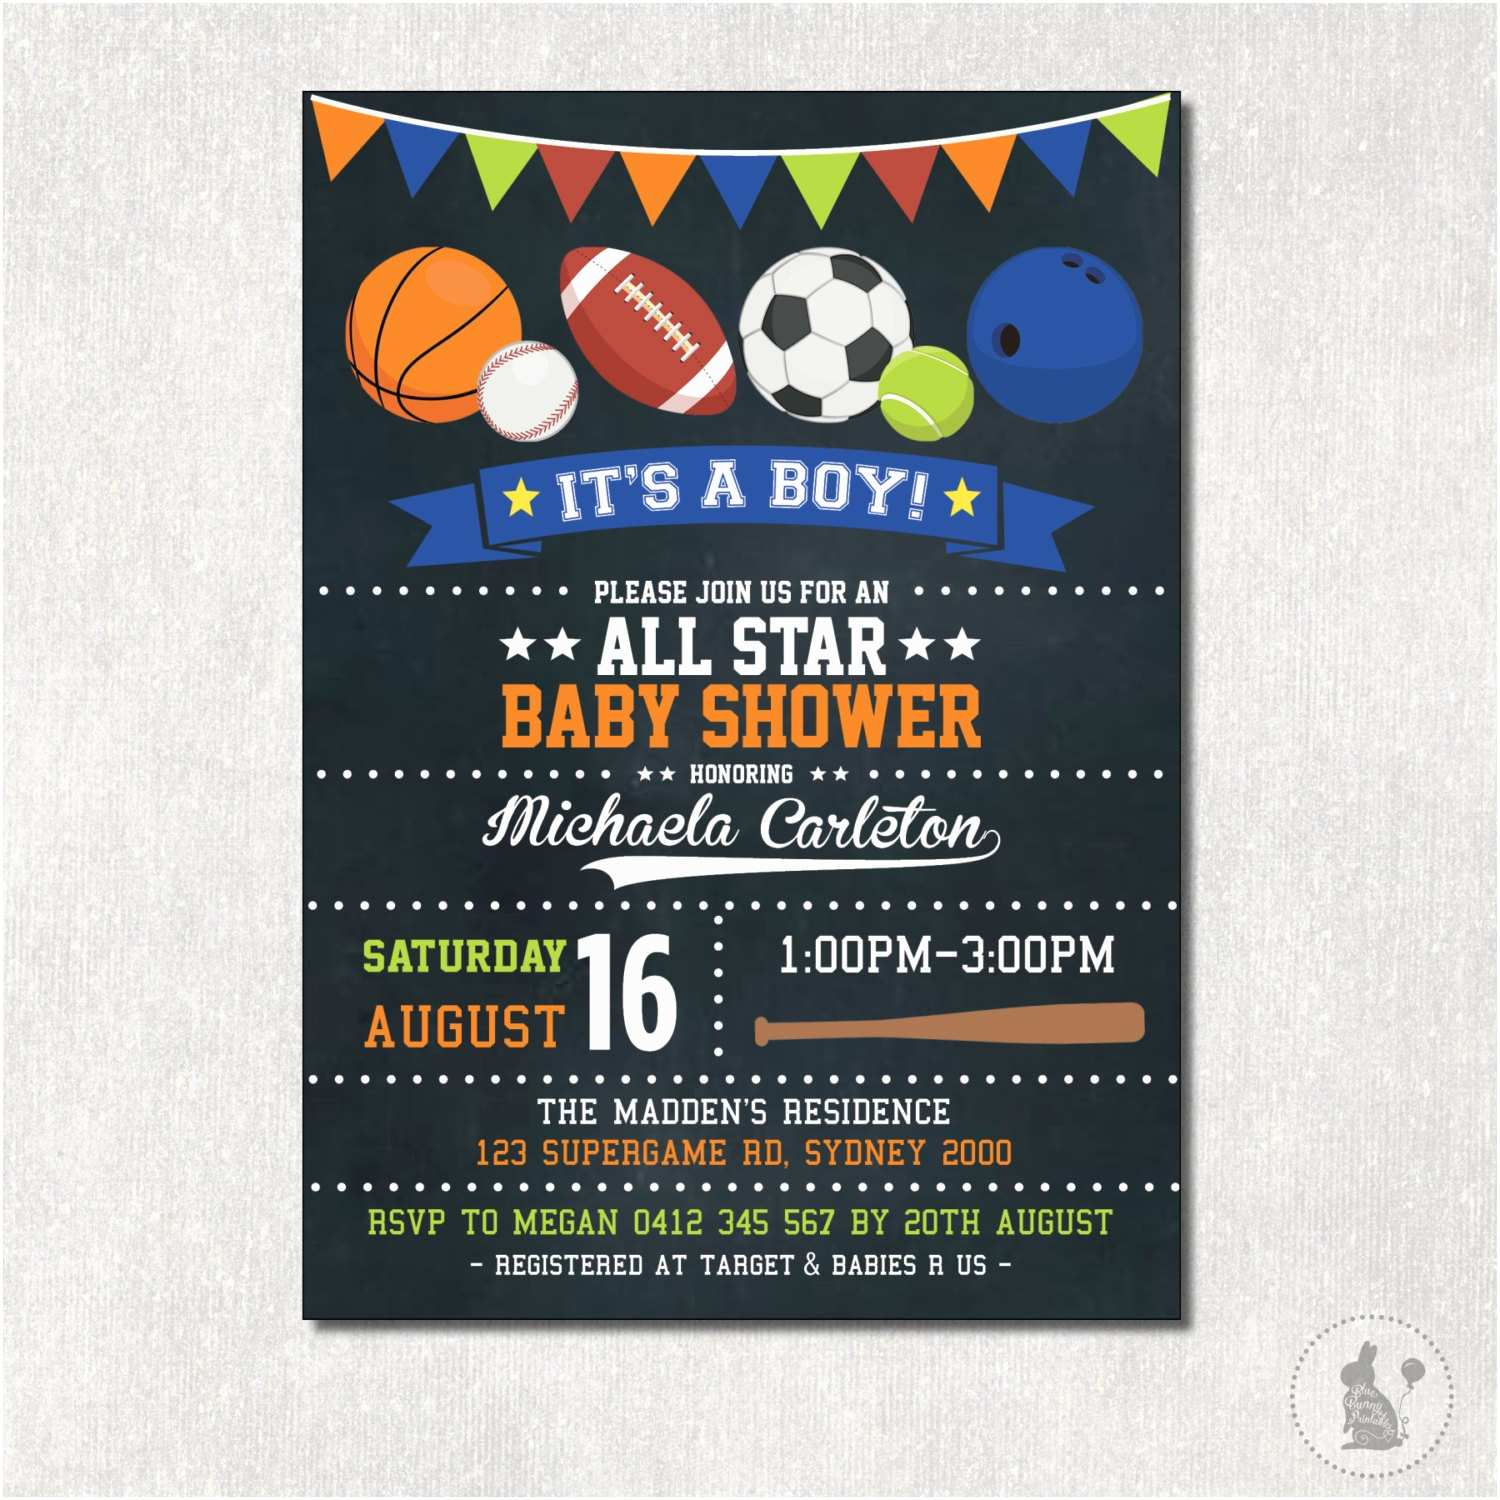 All Star Baby Shower Invitations Sports Baby Shower Invitation All Star Digital Invite